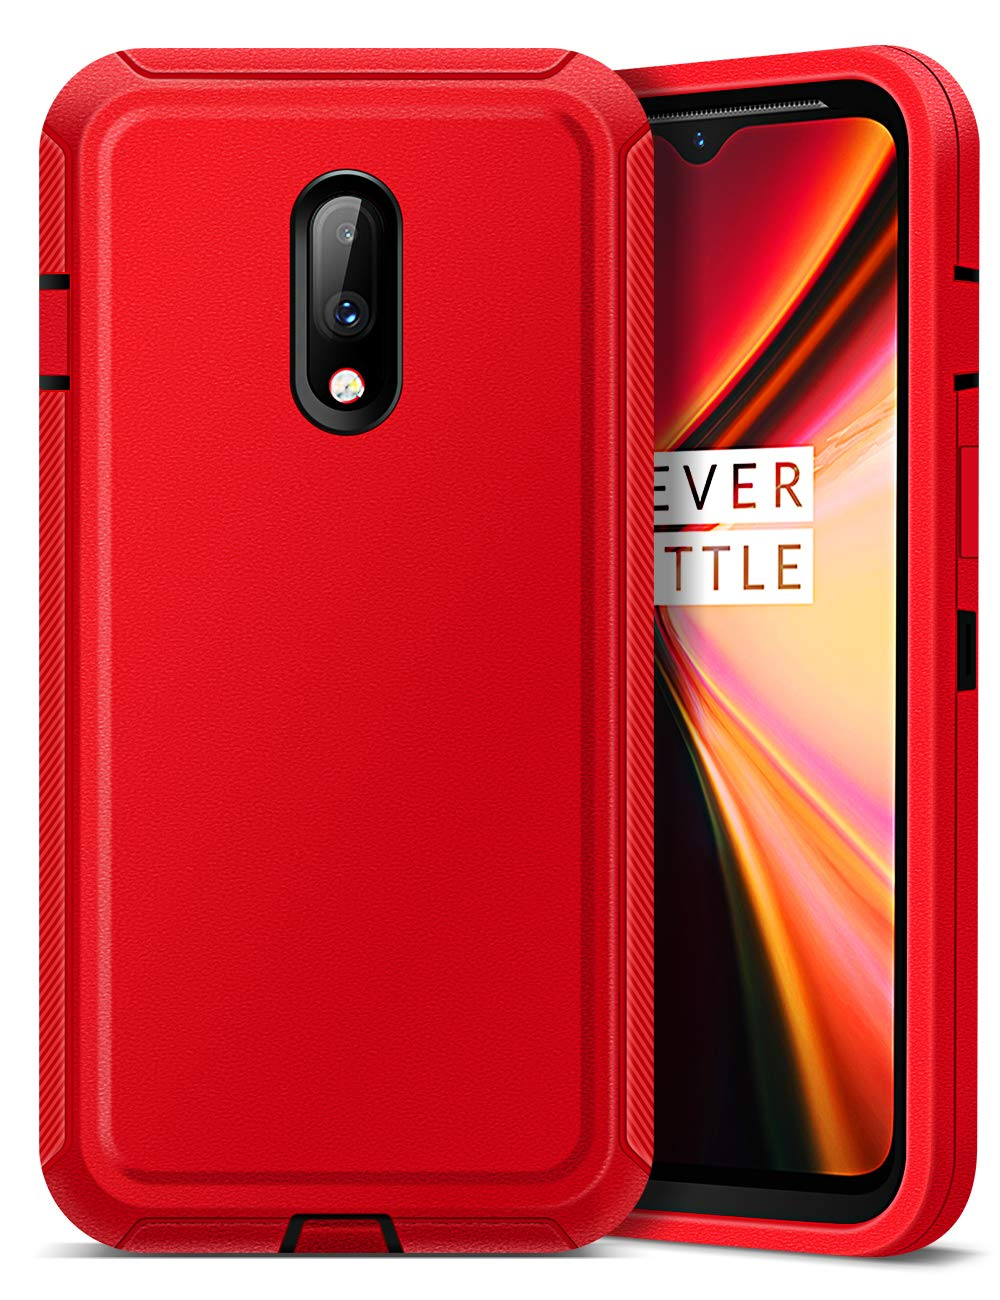 Jelerny OnePlus 7 Cases and Covers